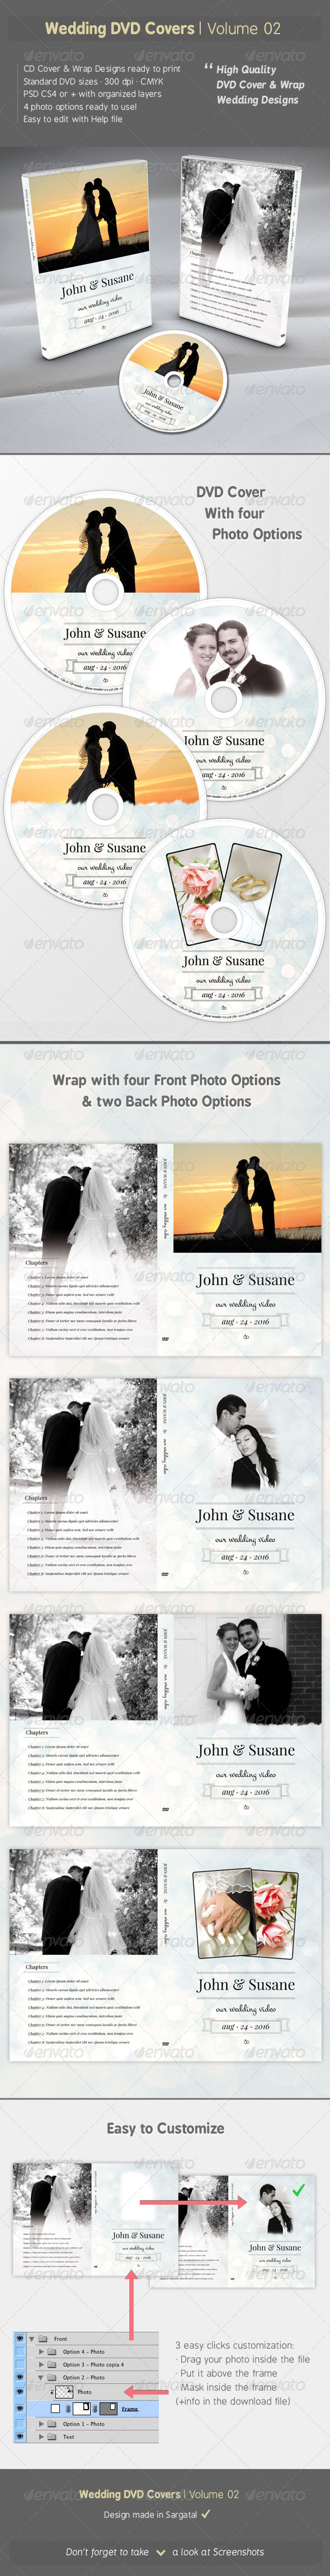 Wedding DVD Covers - Volume 02 - CD & DVD artwork Print Templates